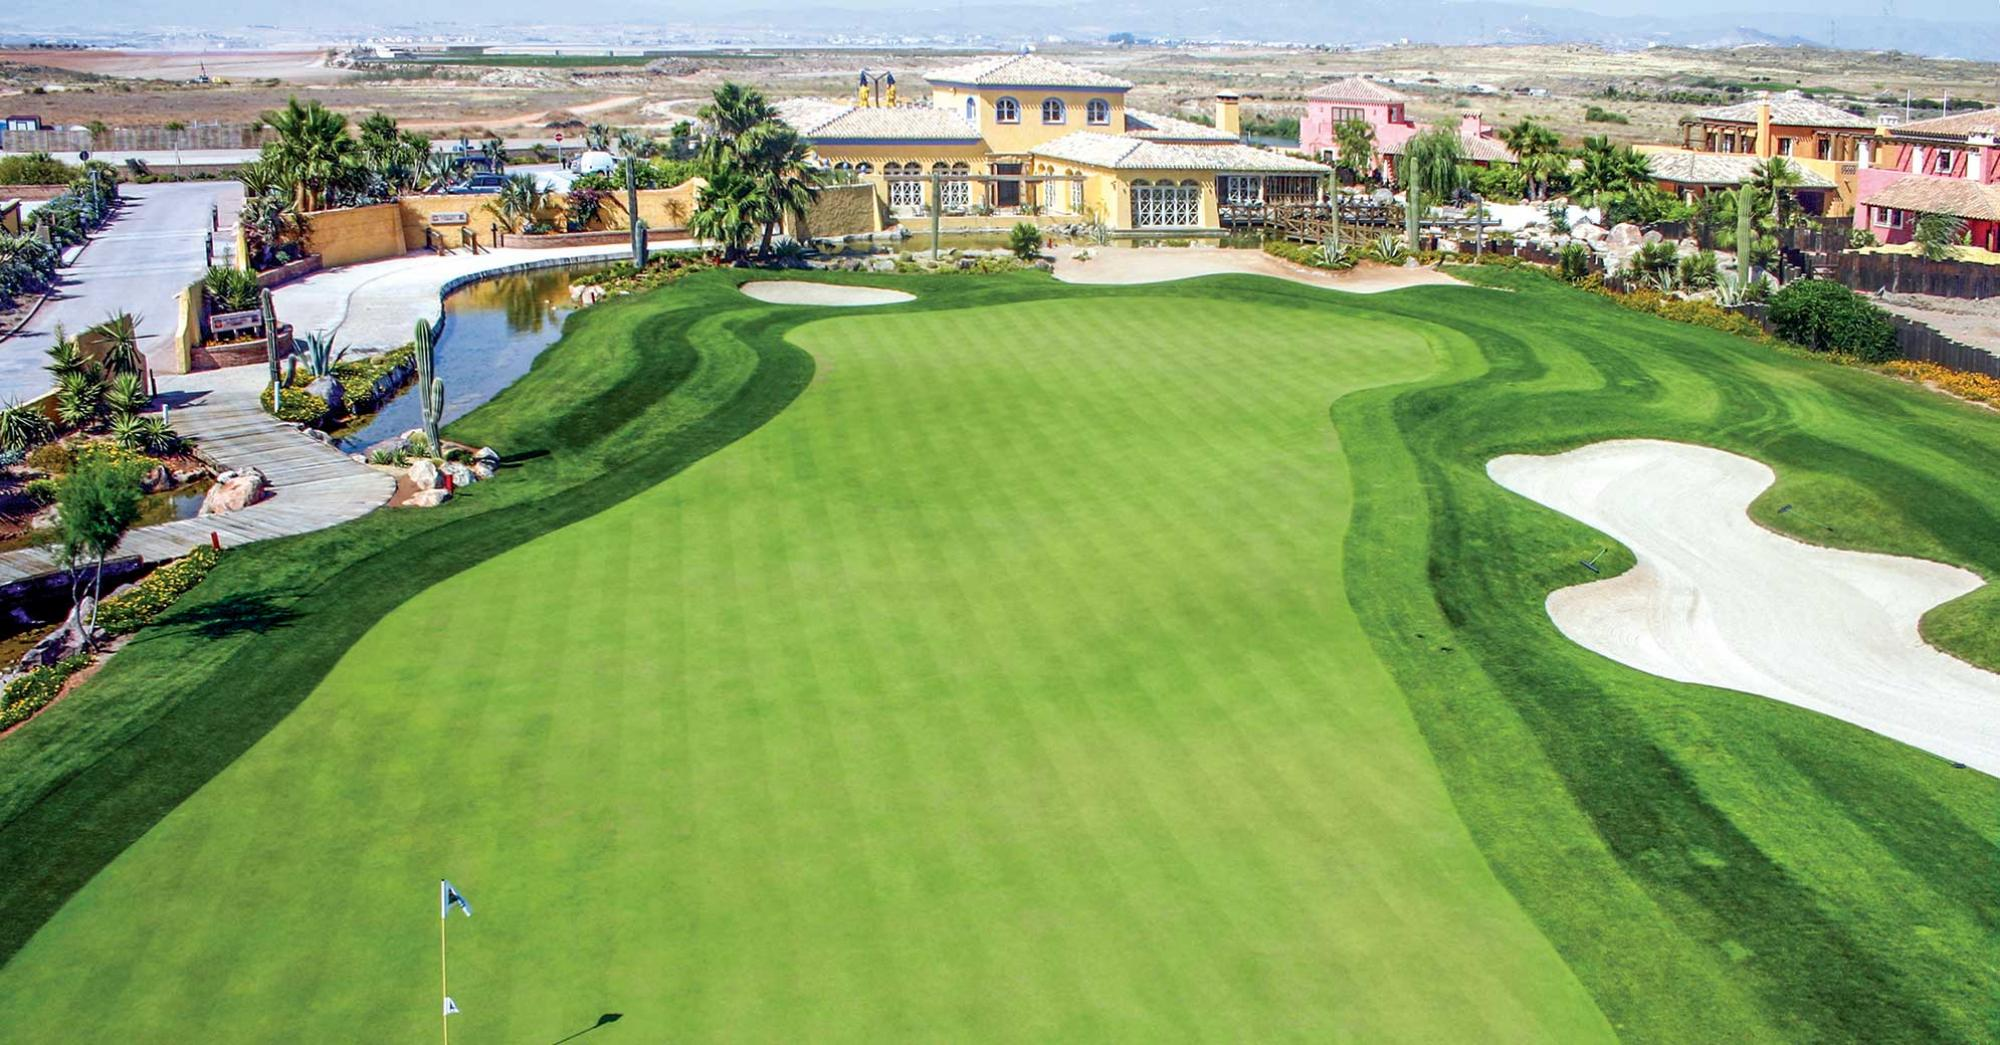 The Desert Springs Golf Club's picturesque golf course situated in sensational Costa Almeria.